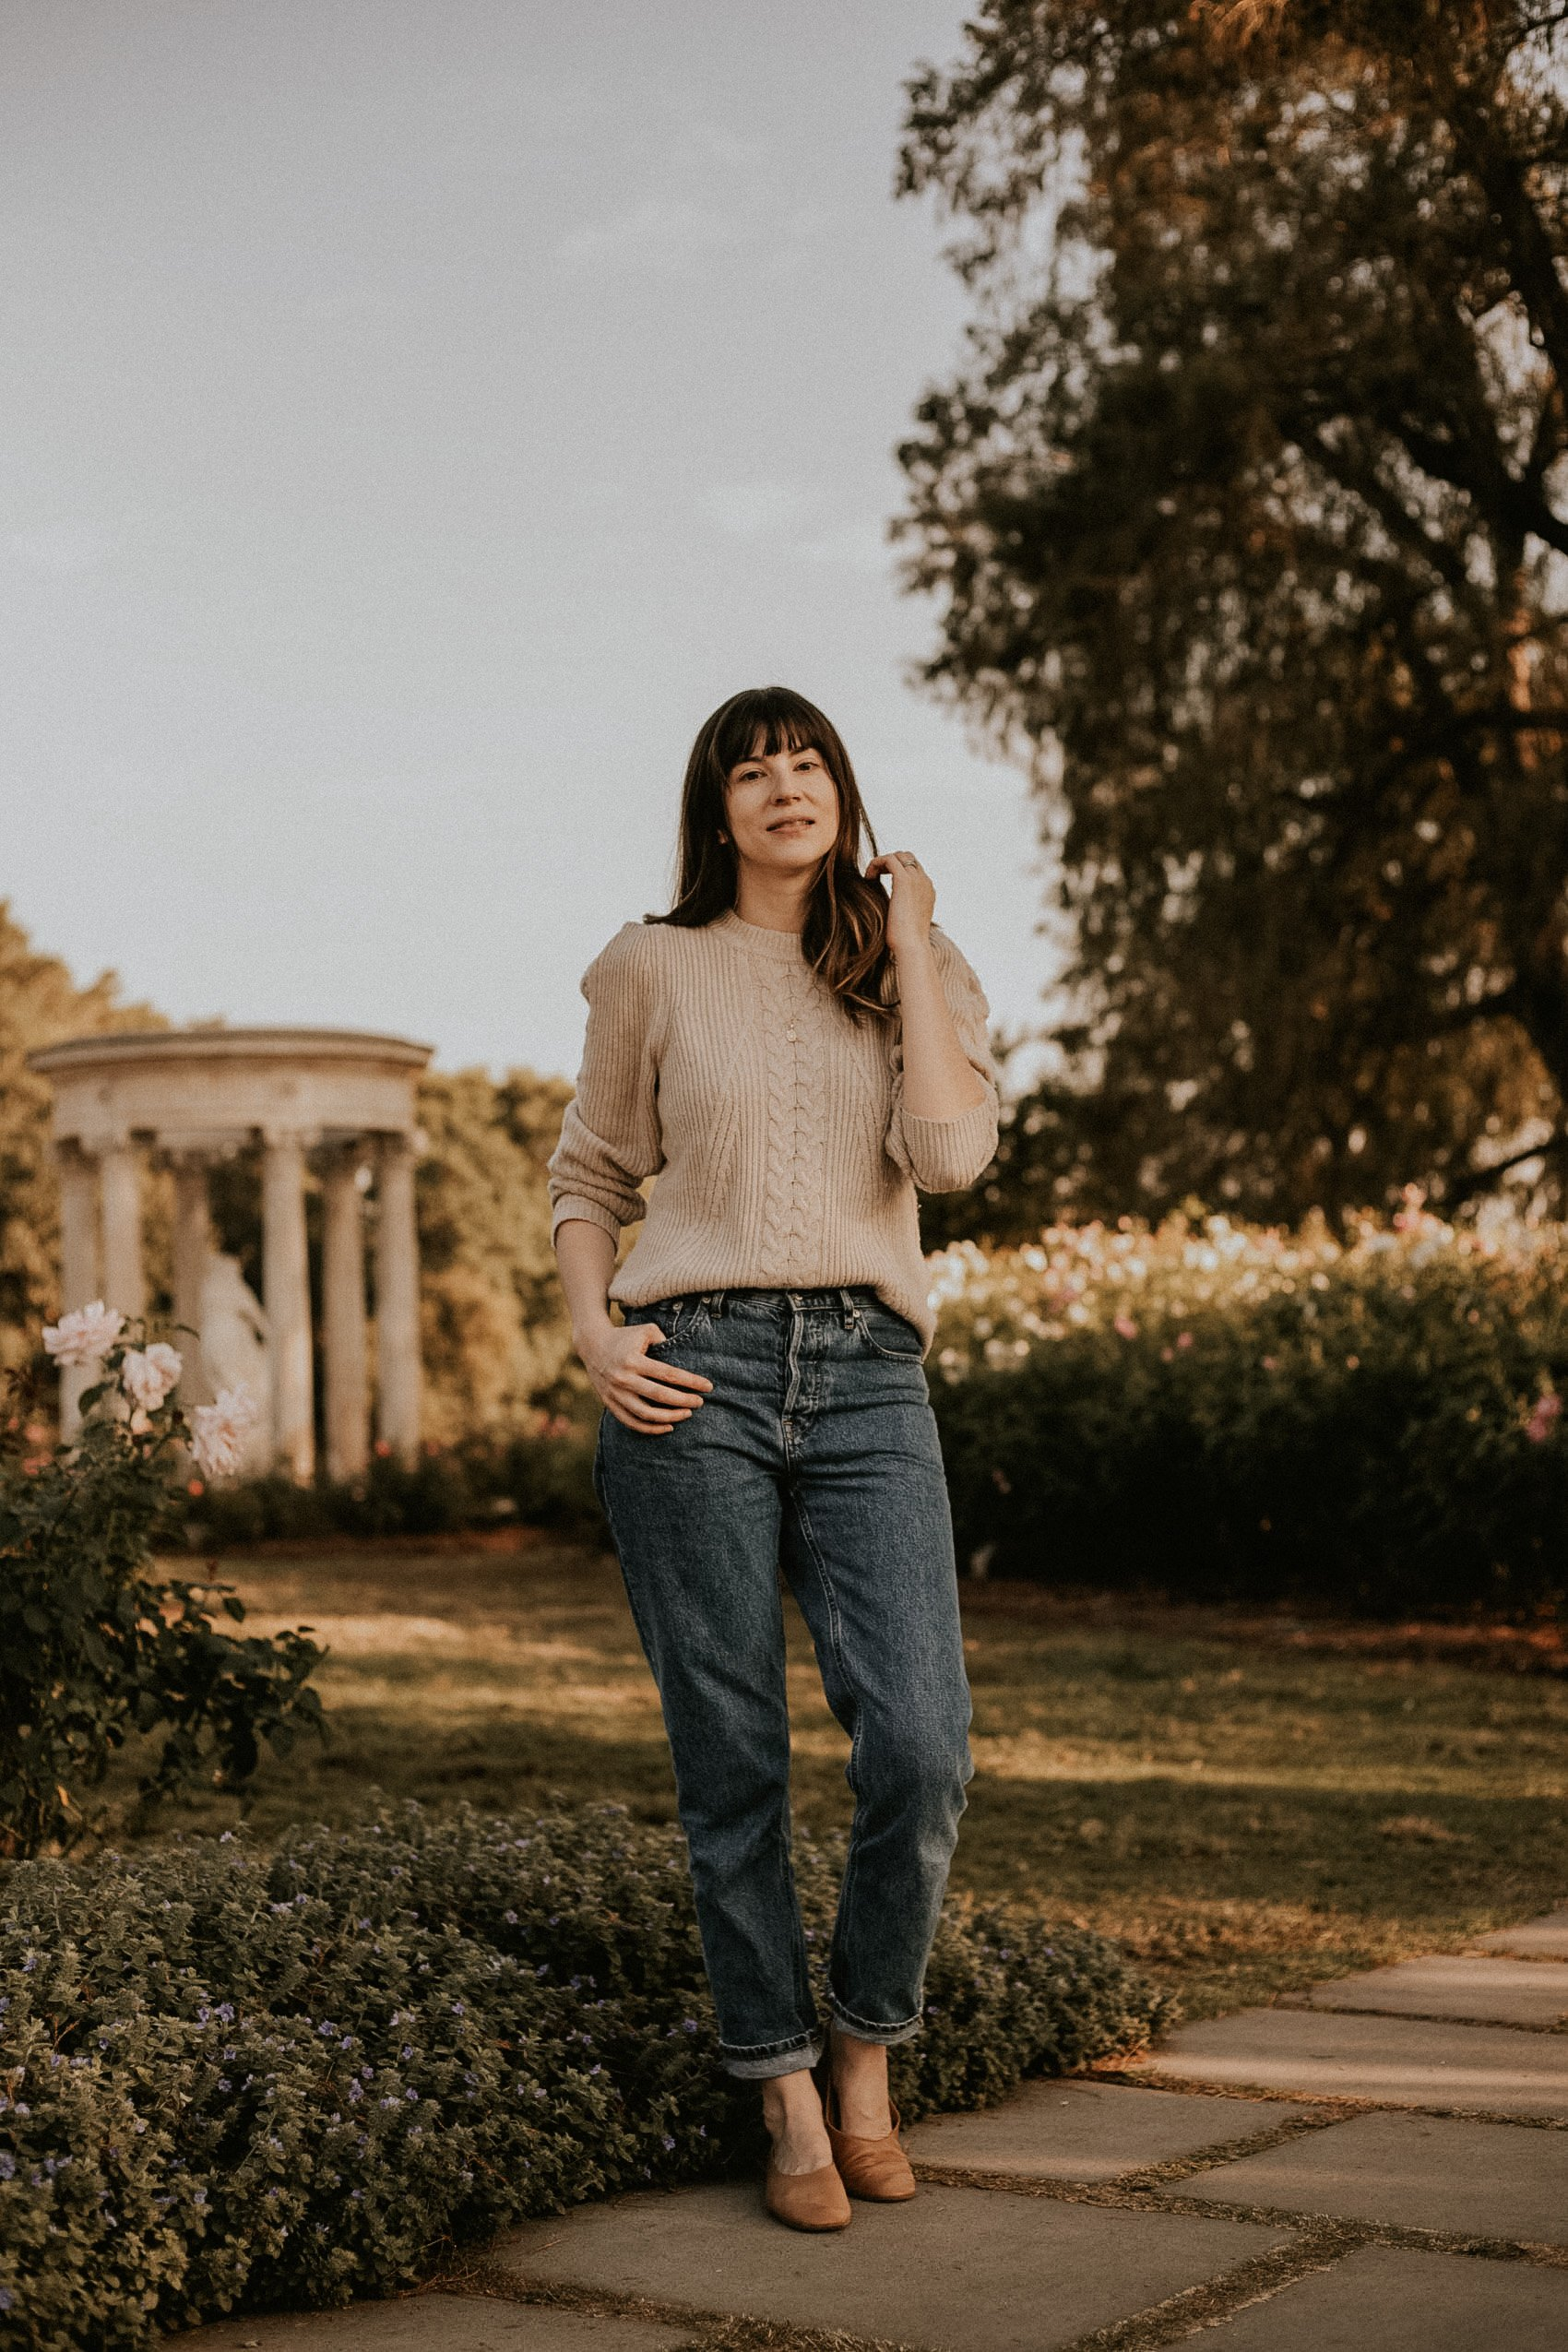 Structured Shoulder Sweater from Naadam with Everlane Mom Jeans